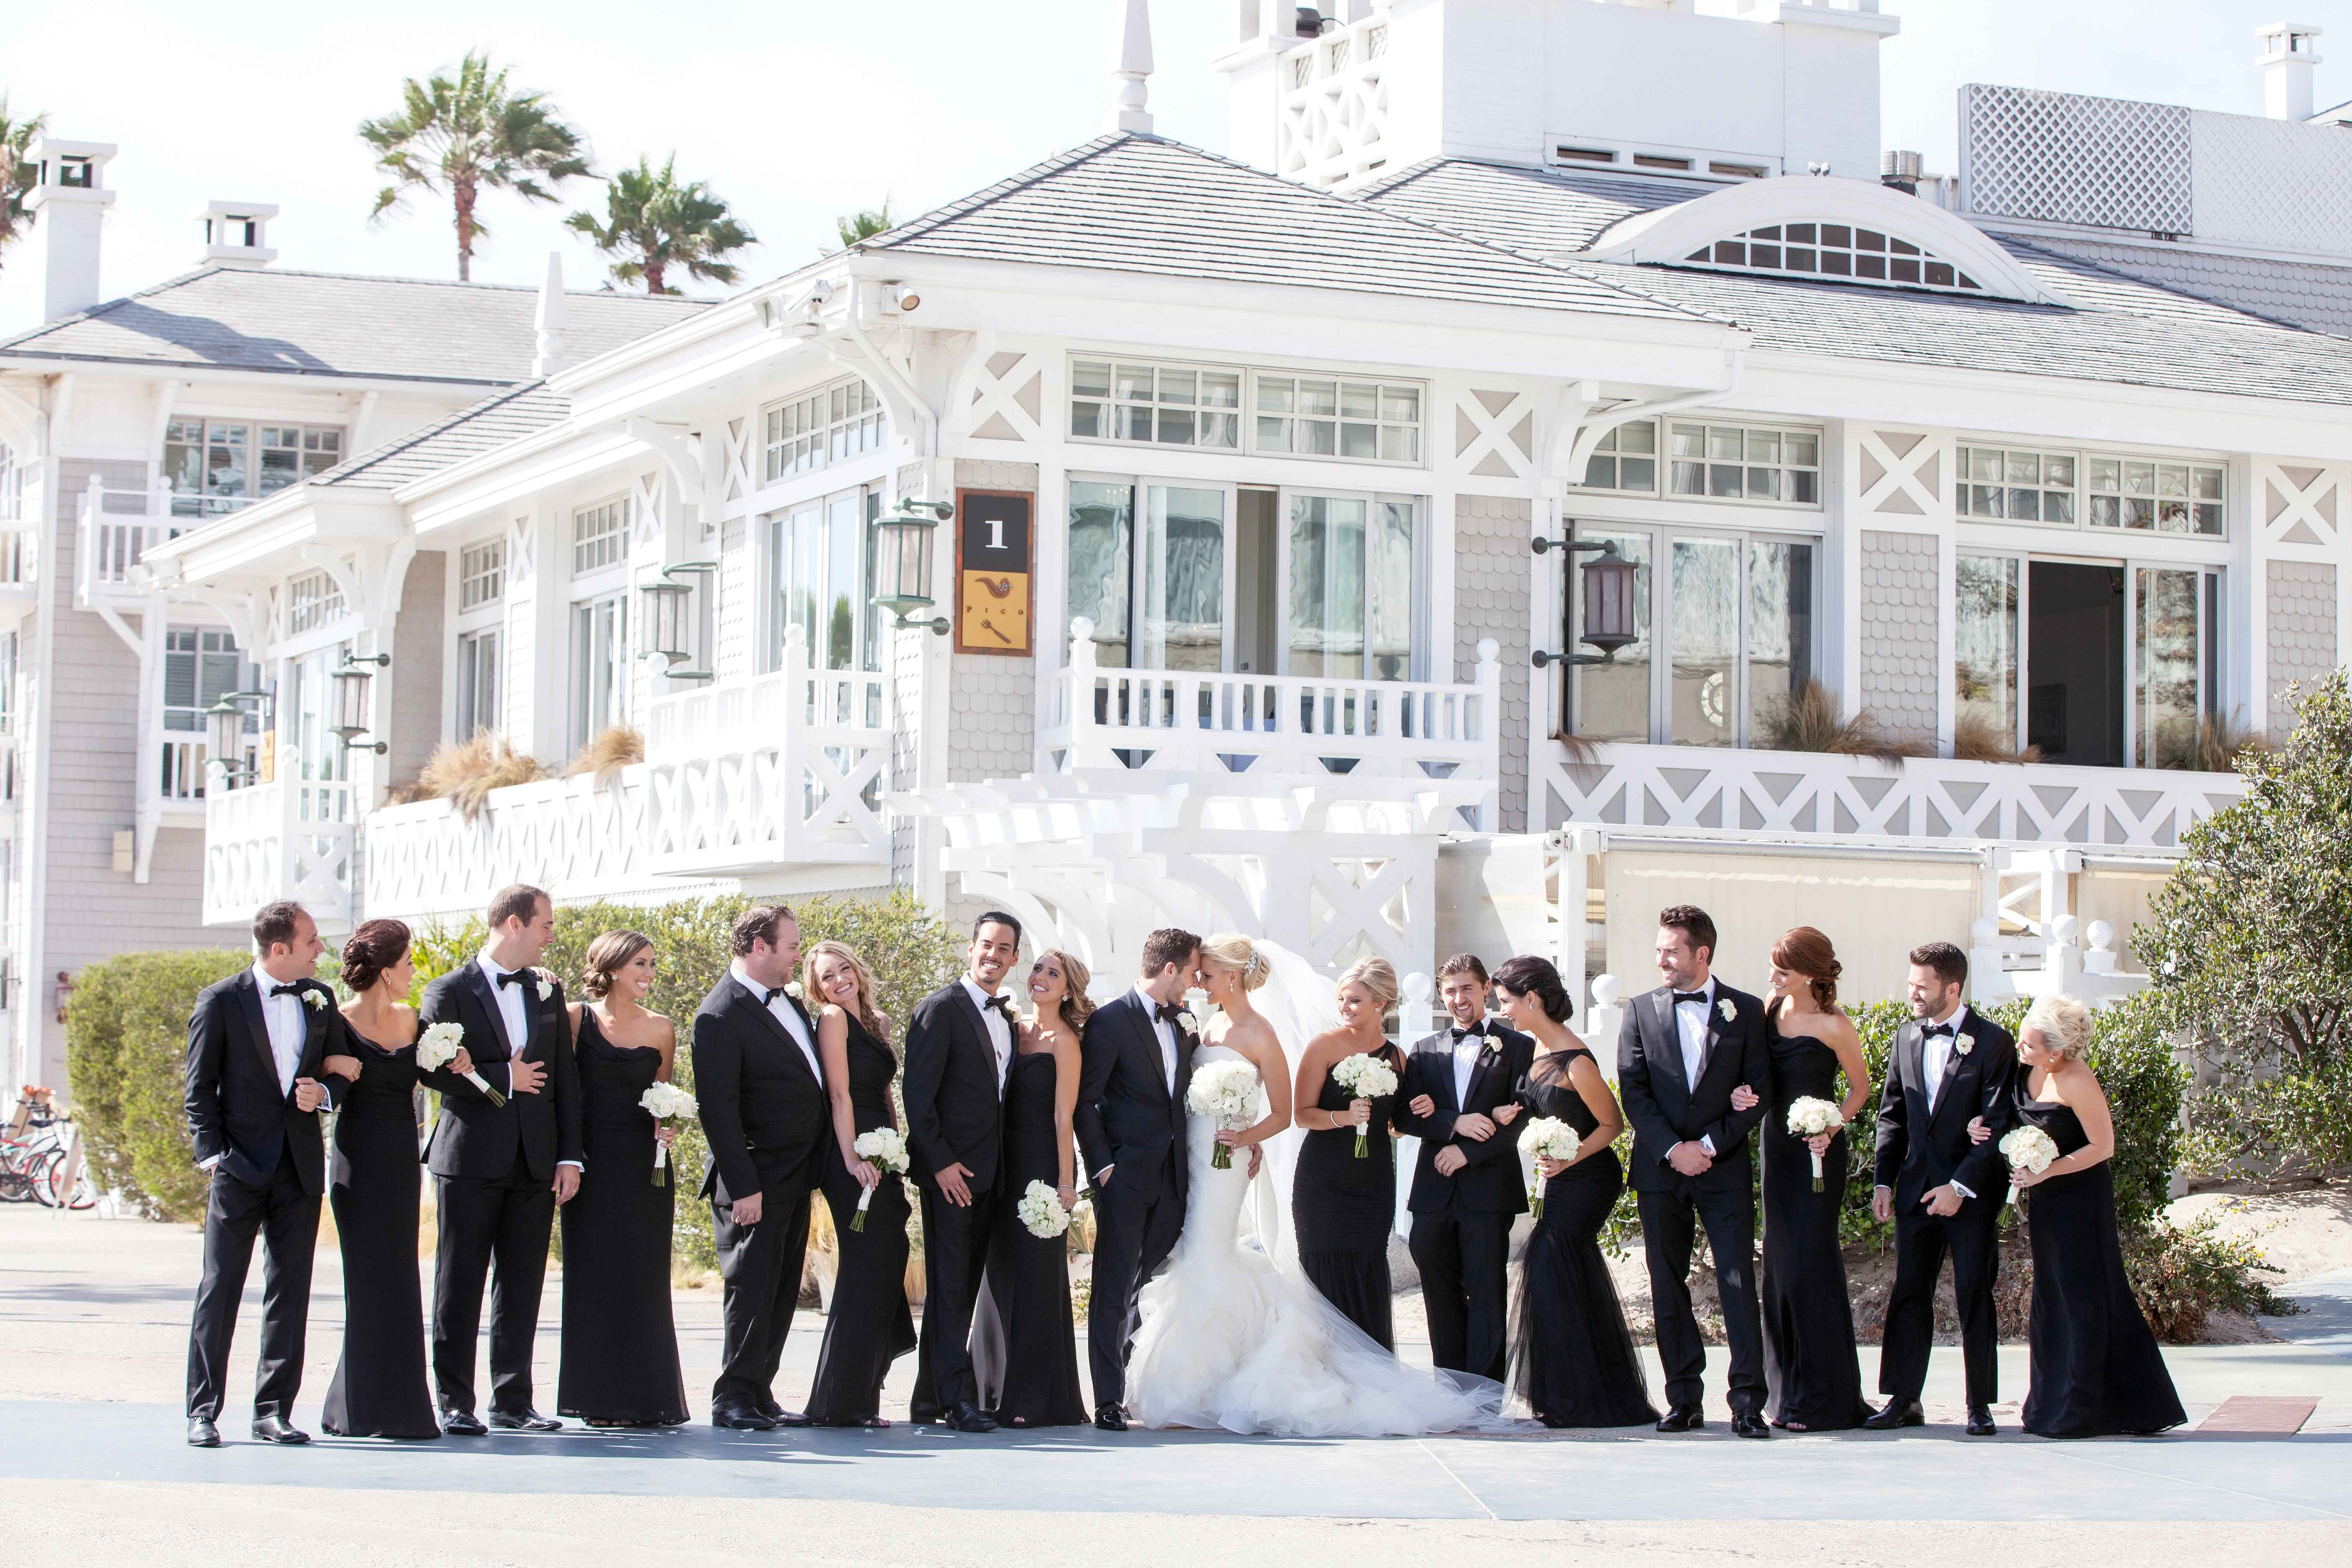 Shutters on the Beach exterior with bridesmaids groomsmen